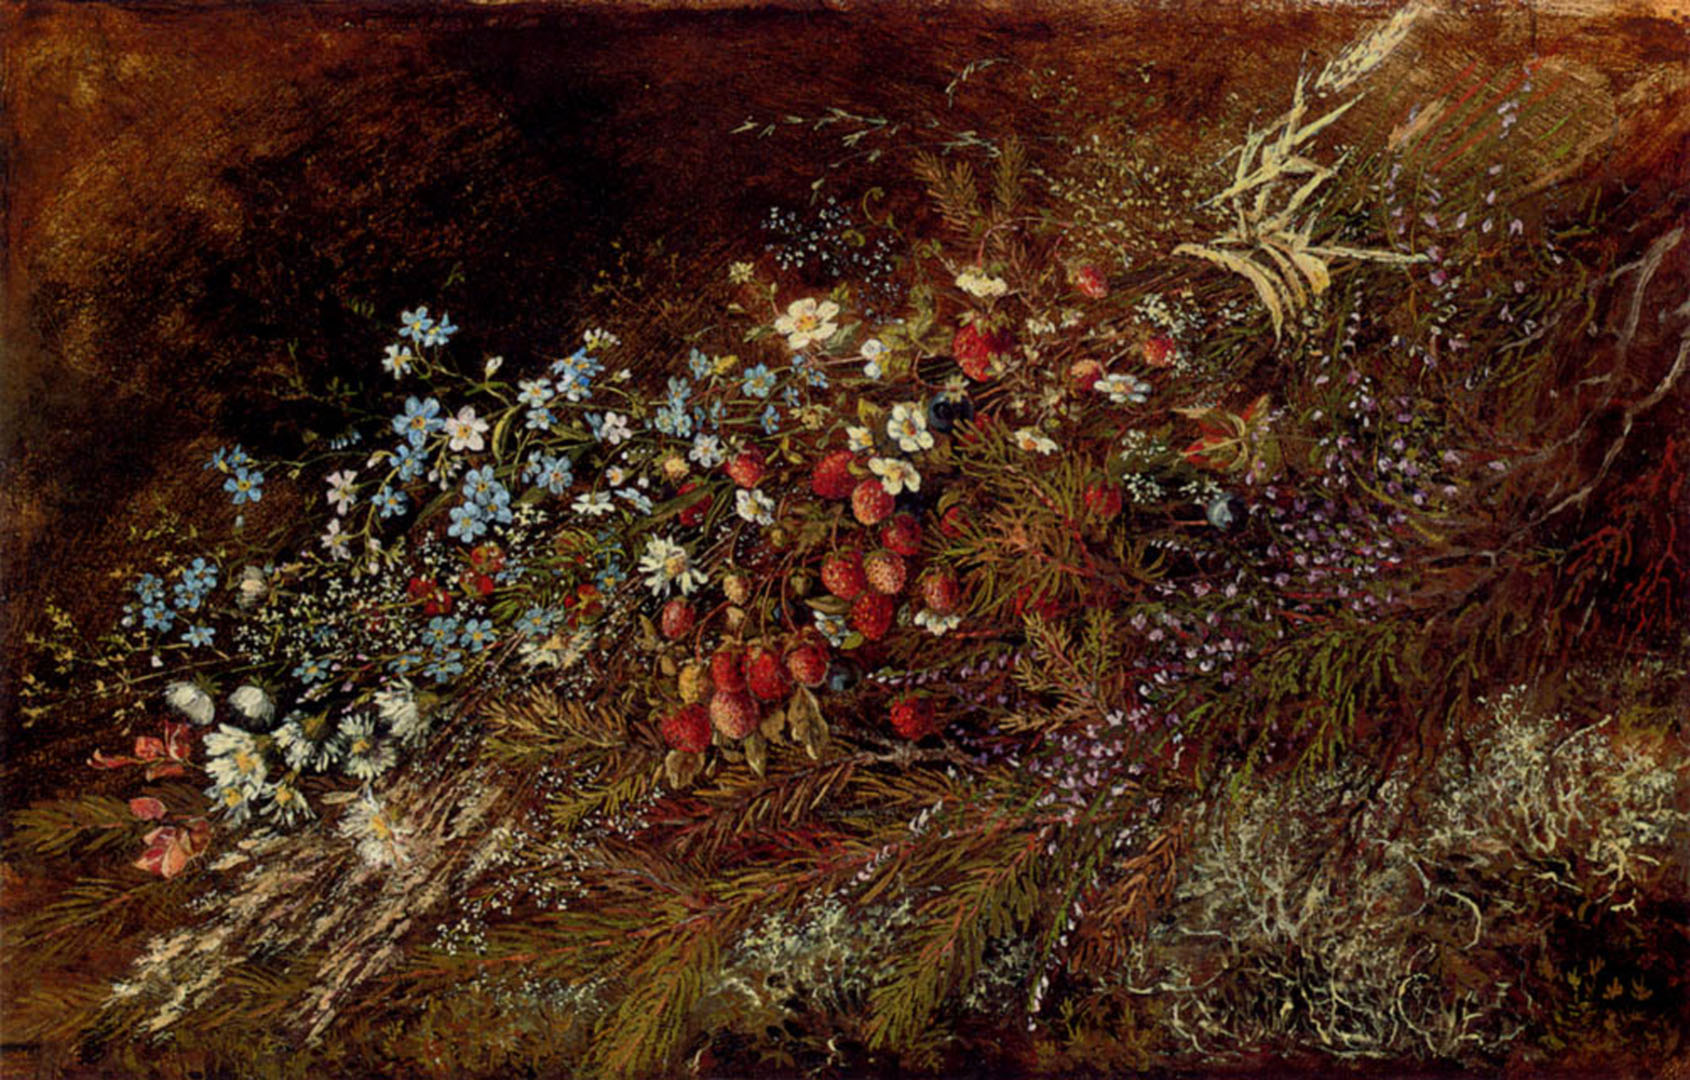 A Bouquet Of Summer Fruits And Flowers On A Mossy Bank